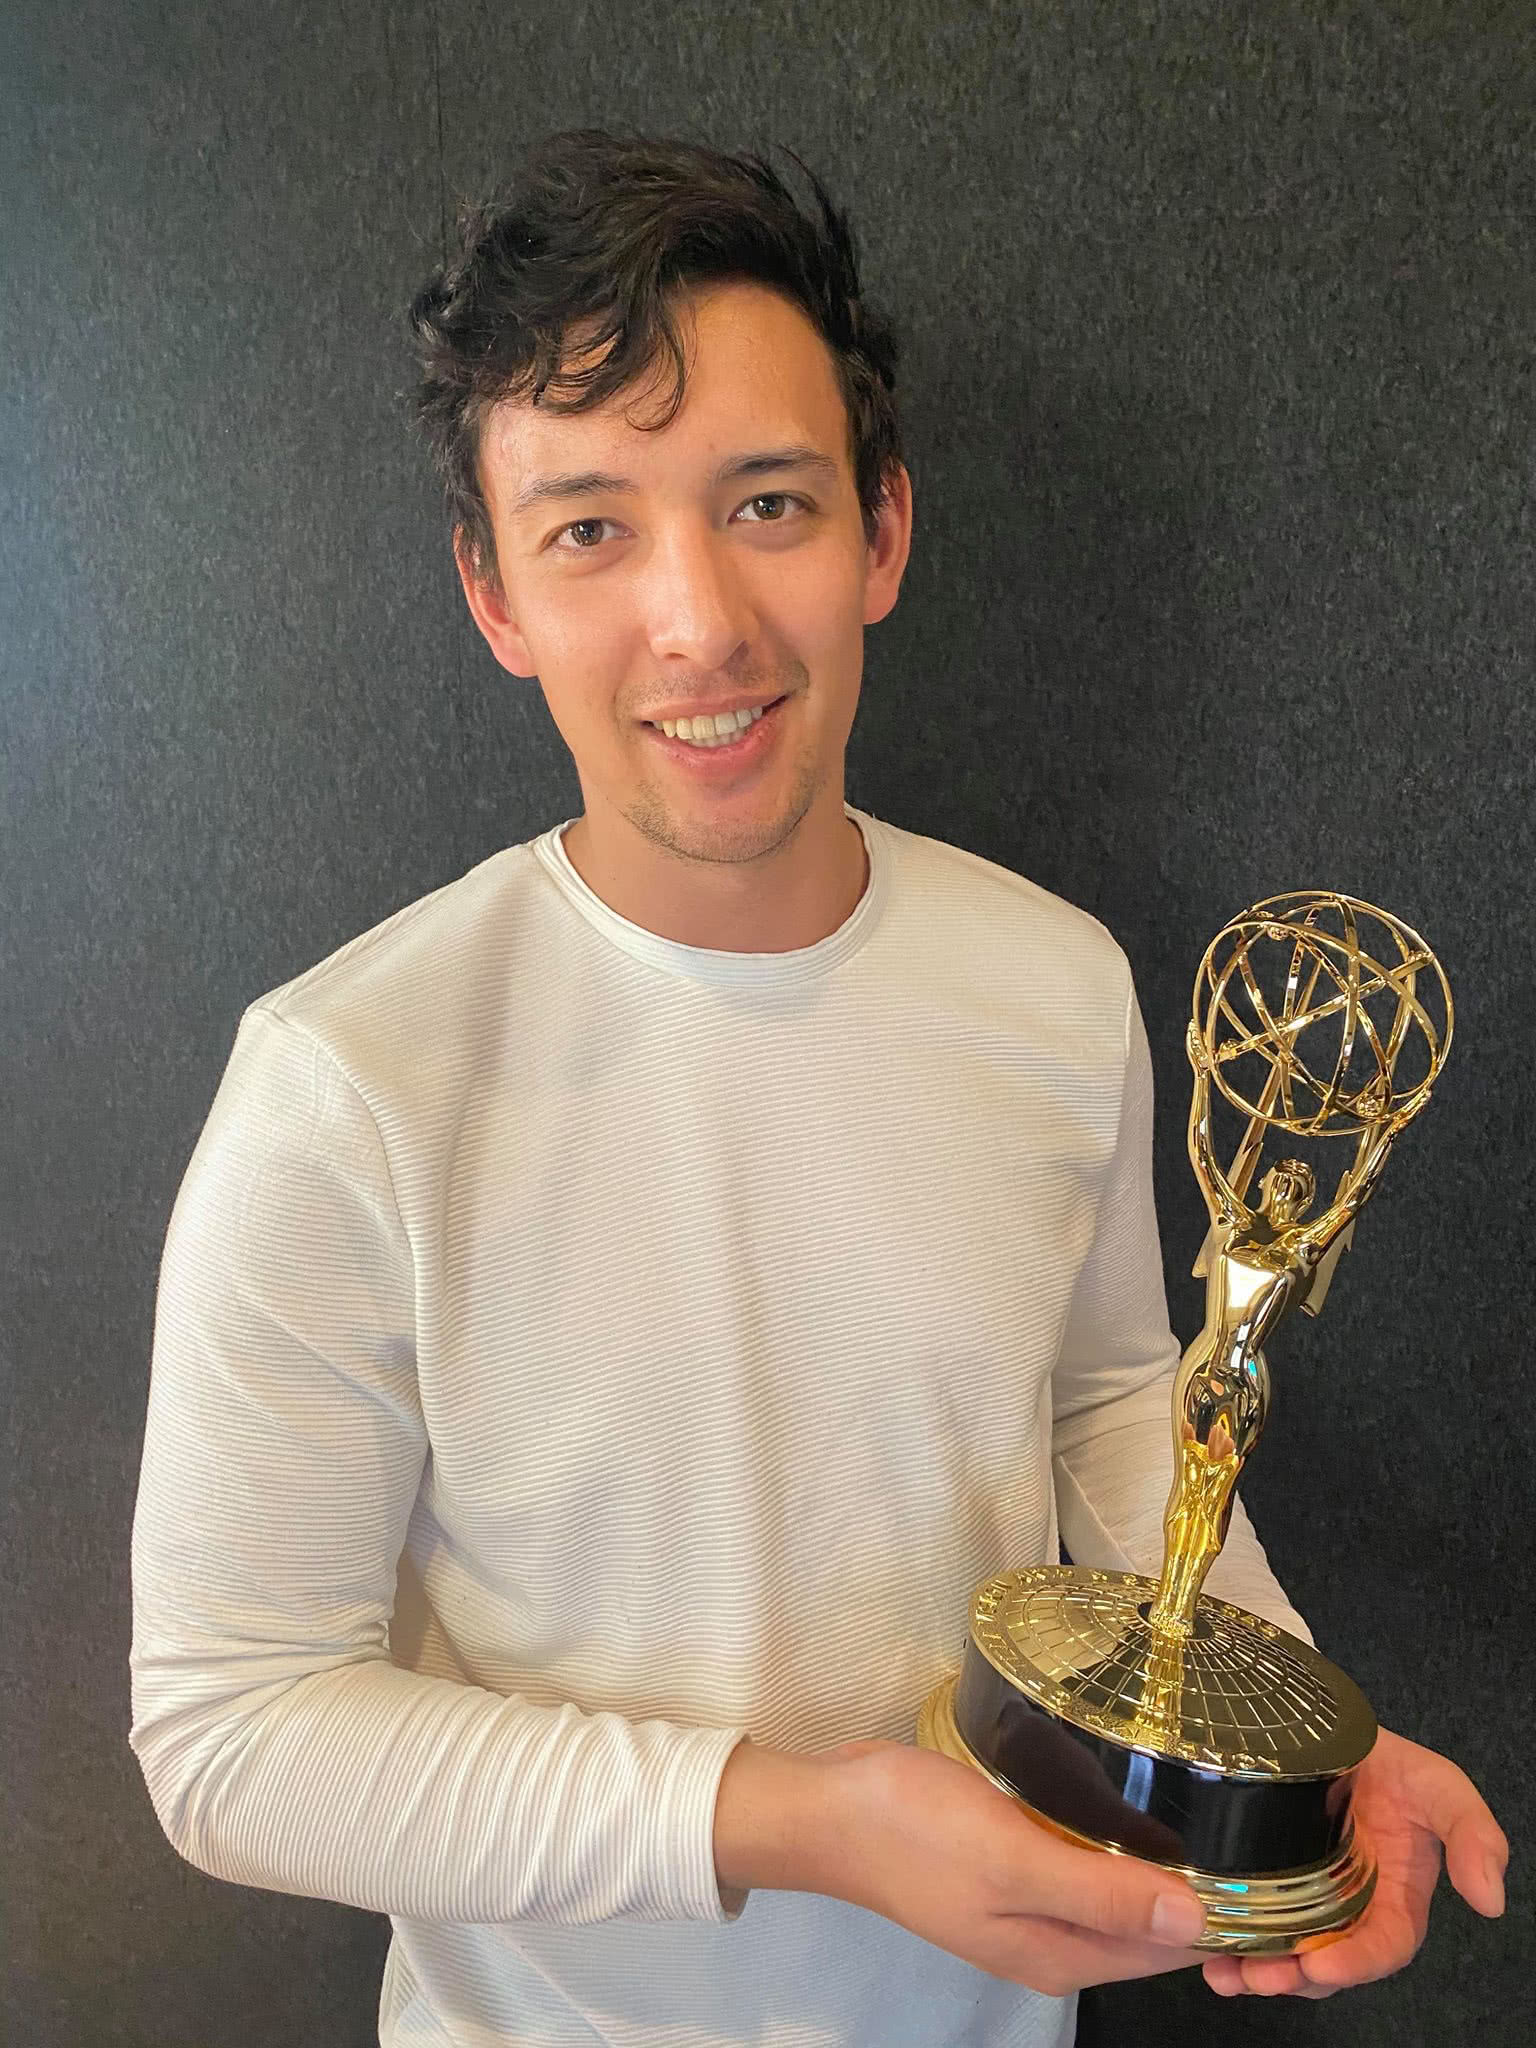 Ciel with his emmy